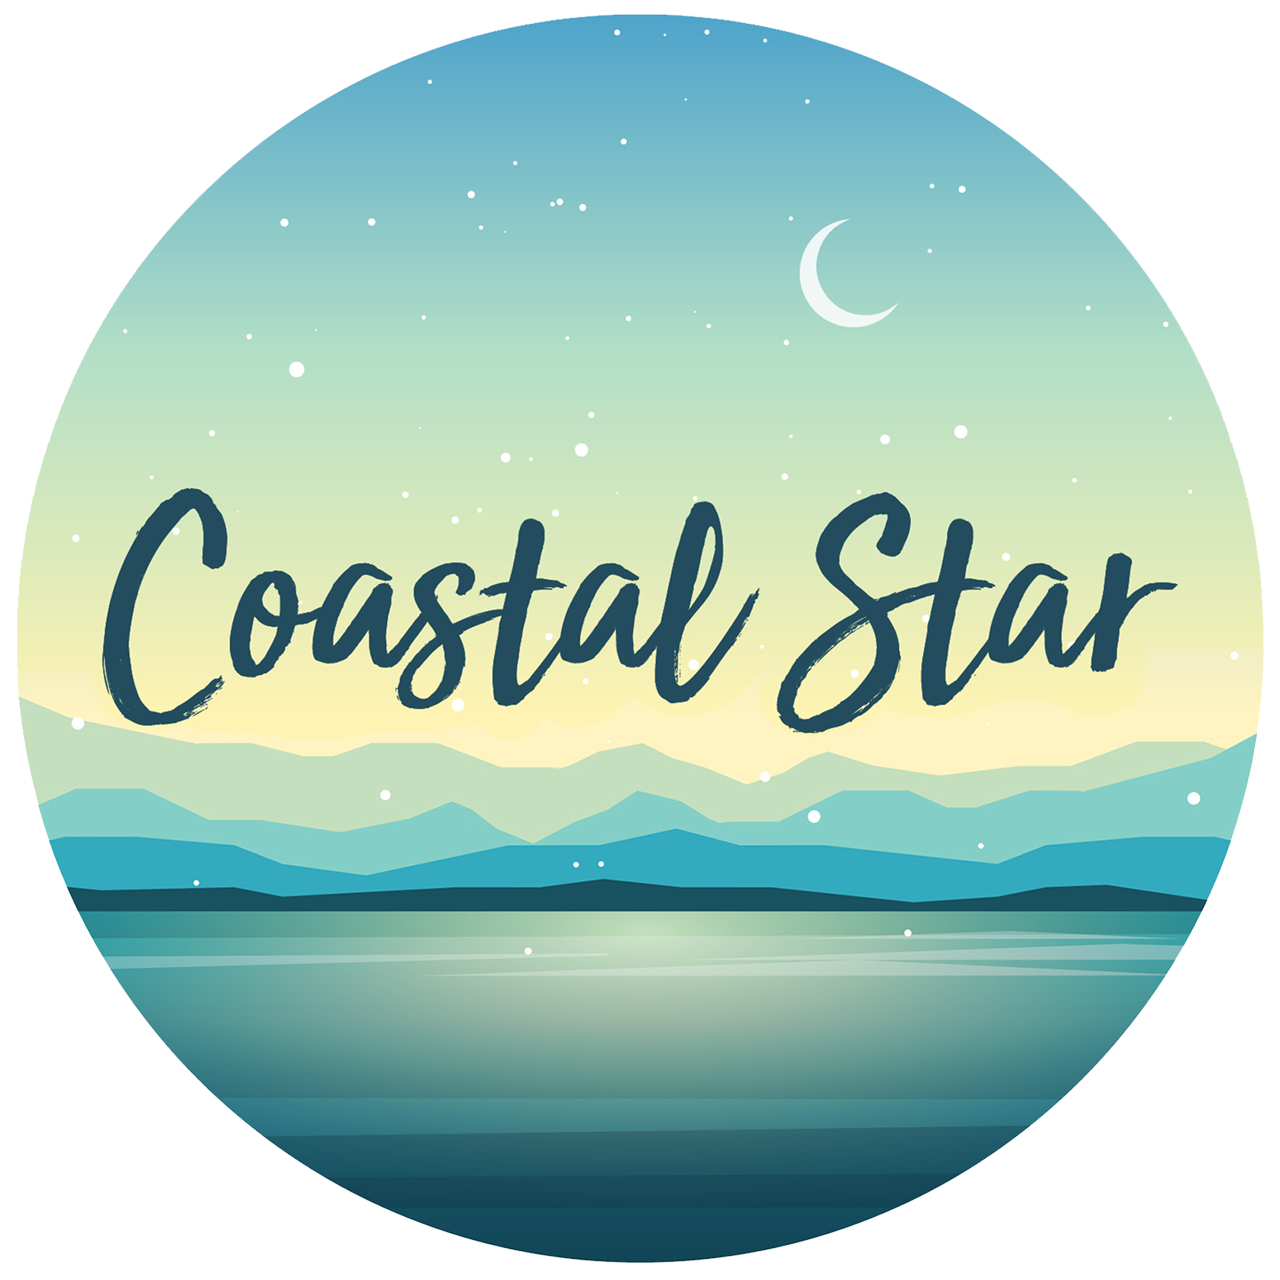 Coastal Star Farm